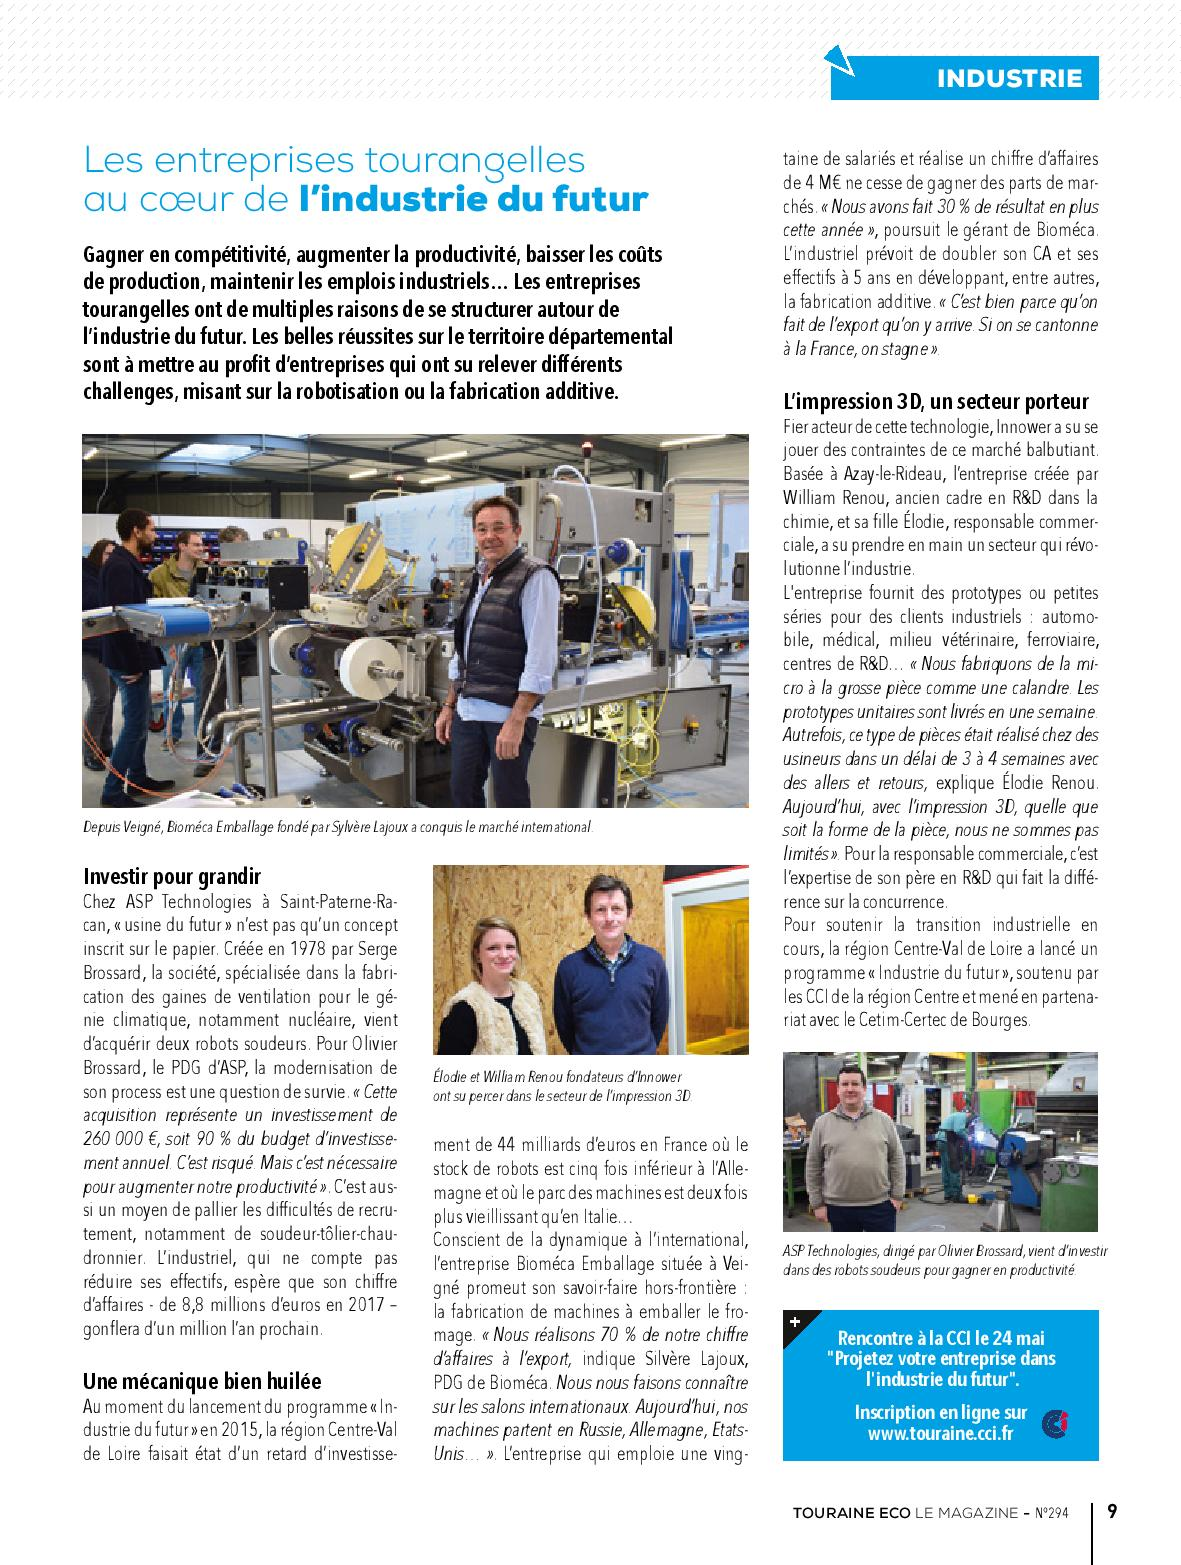 Touraine_Eco_294_Mars2018-page-009